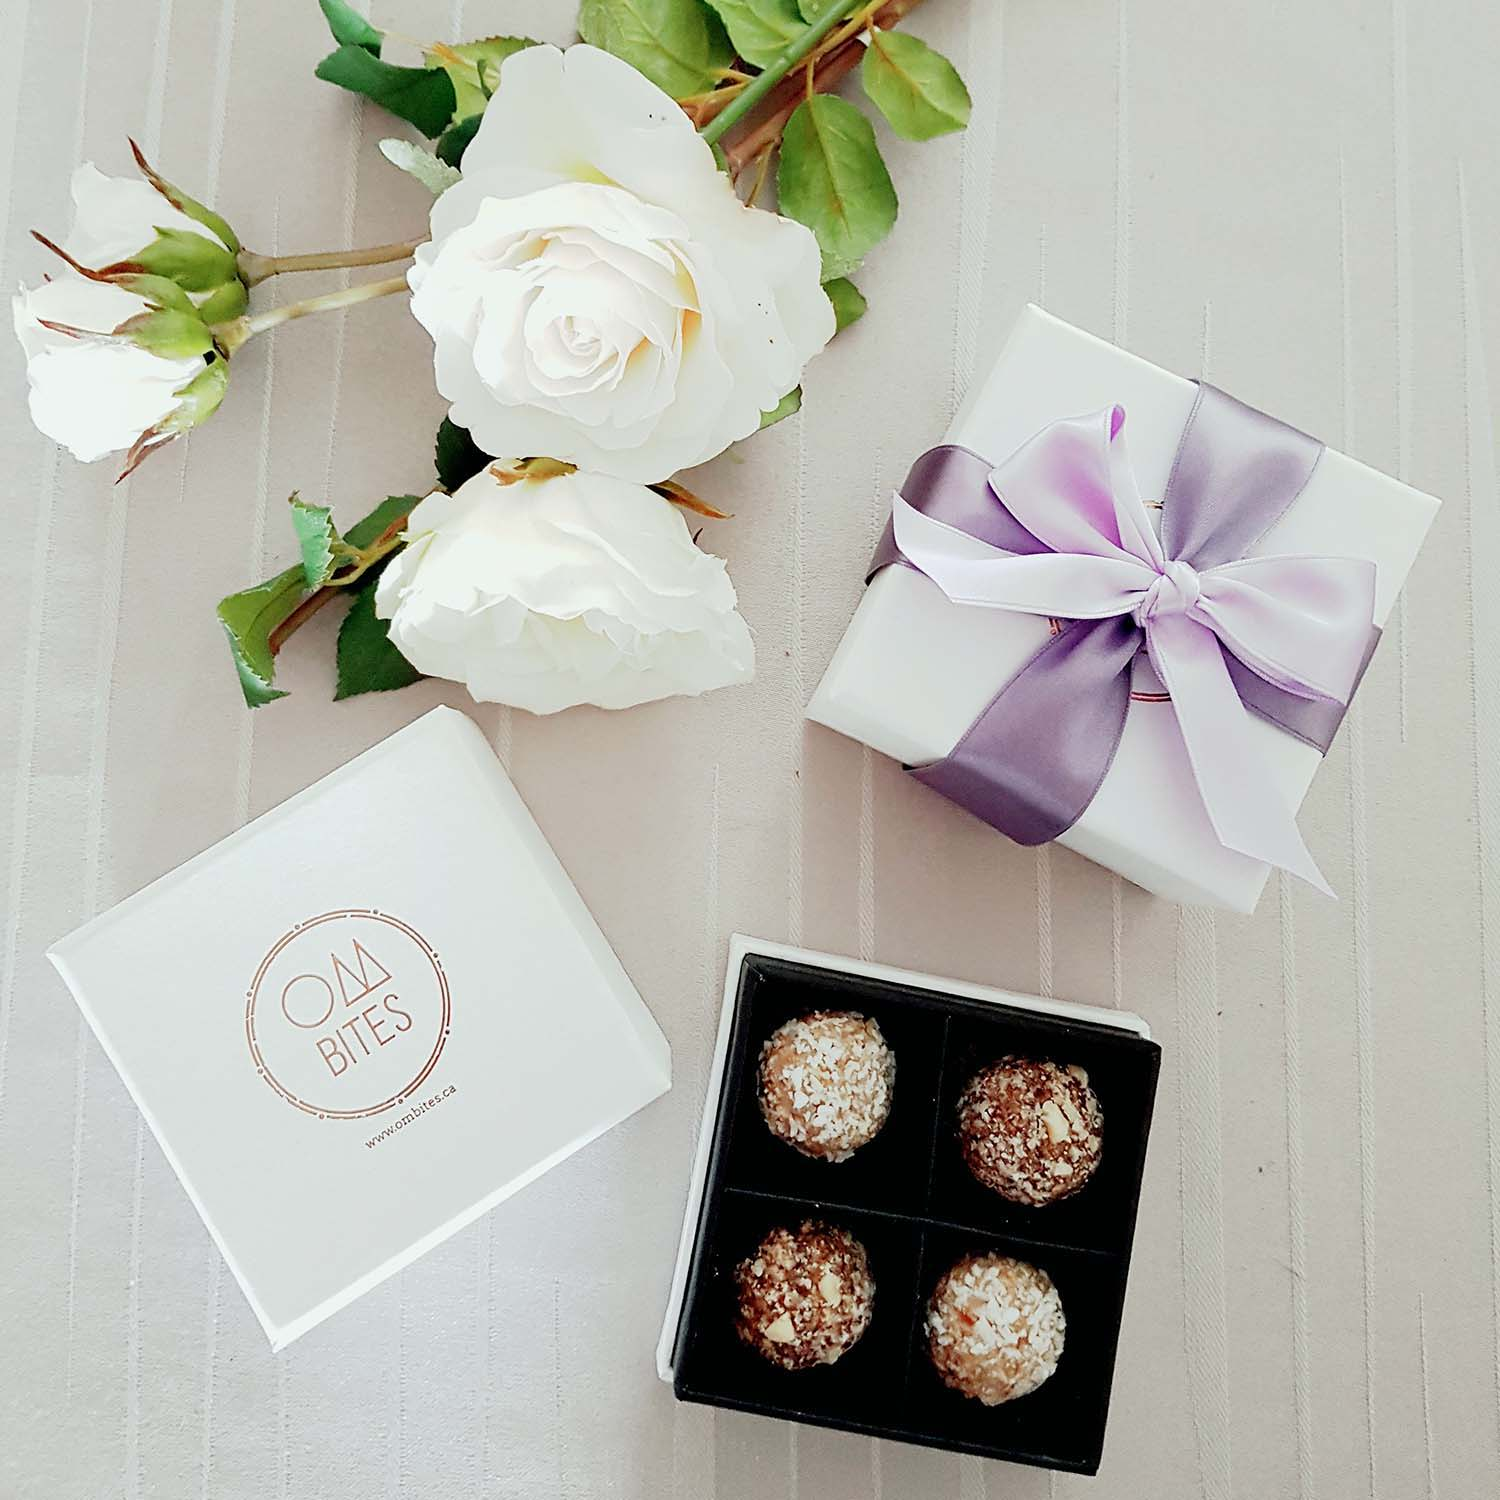 Dice Wedding Favor Boxes: White heart chocolate cake cookie candy ...